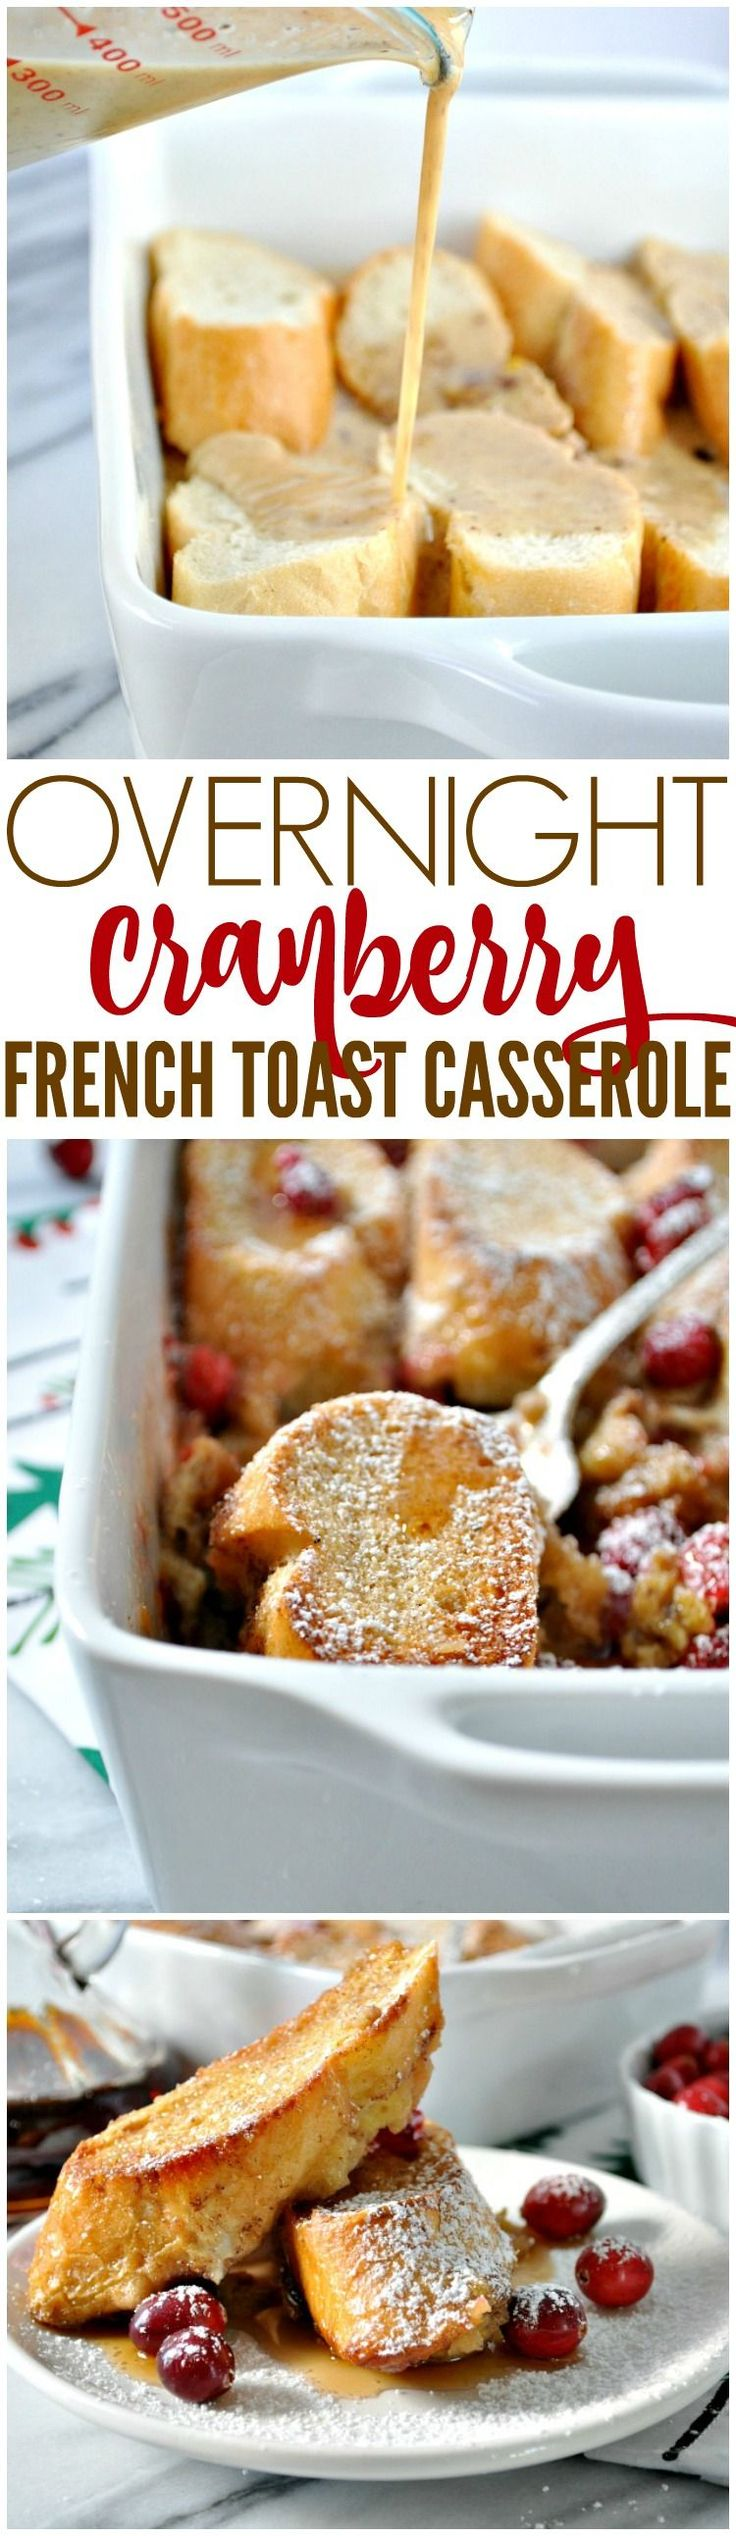 Food Network Overnight French Toast Casserole